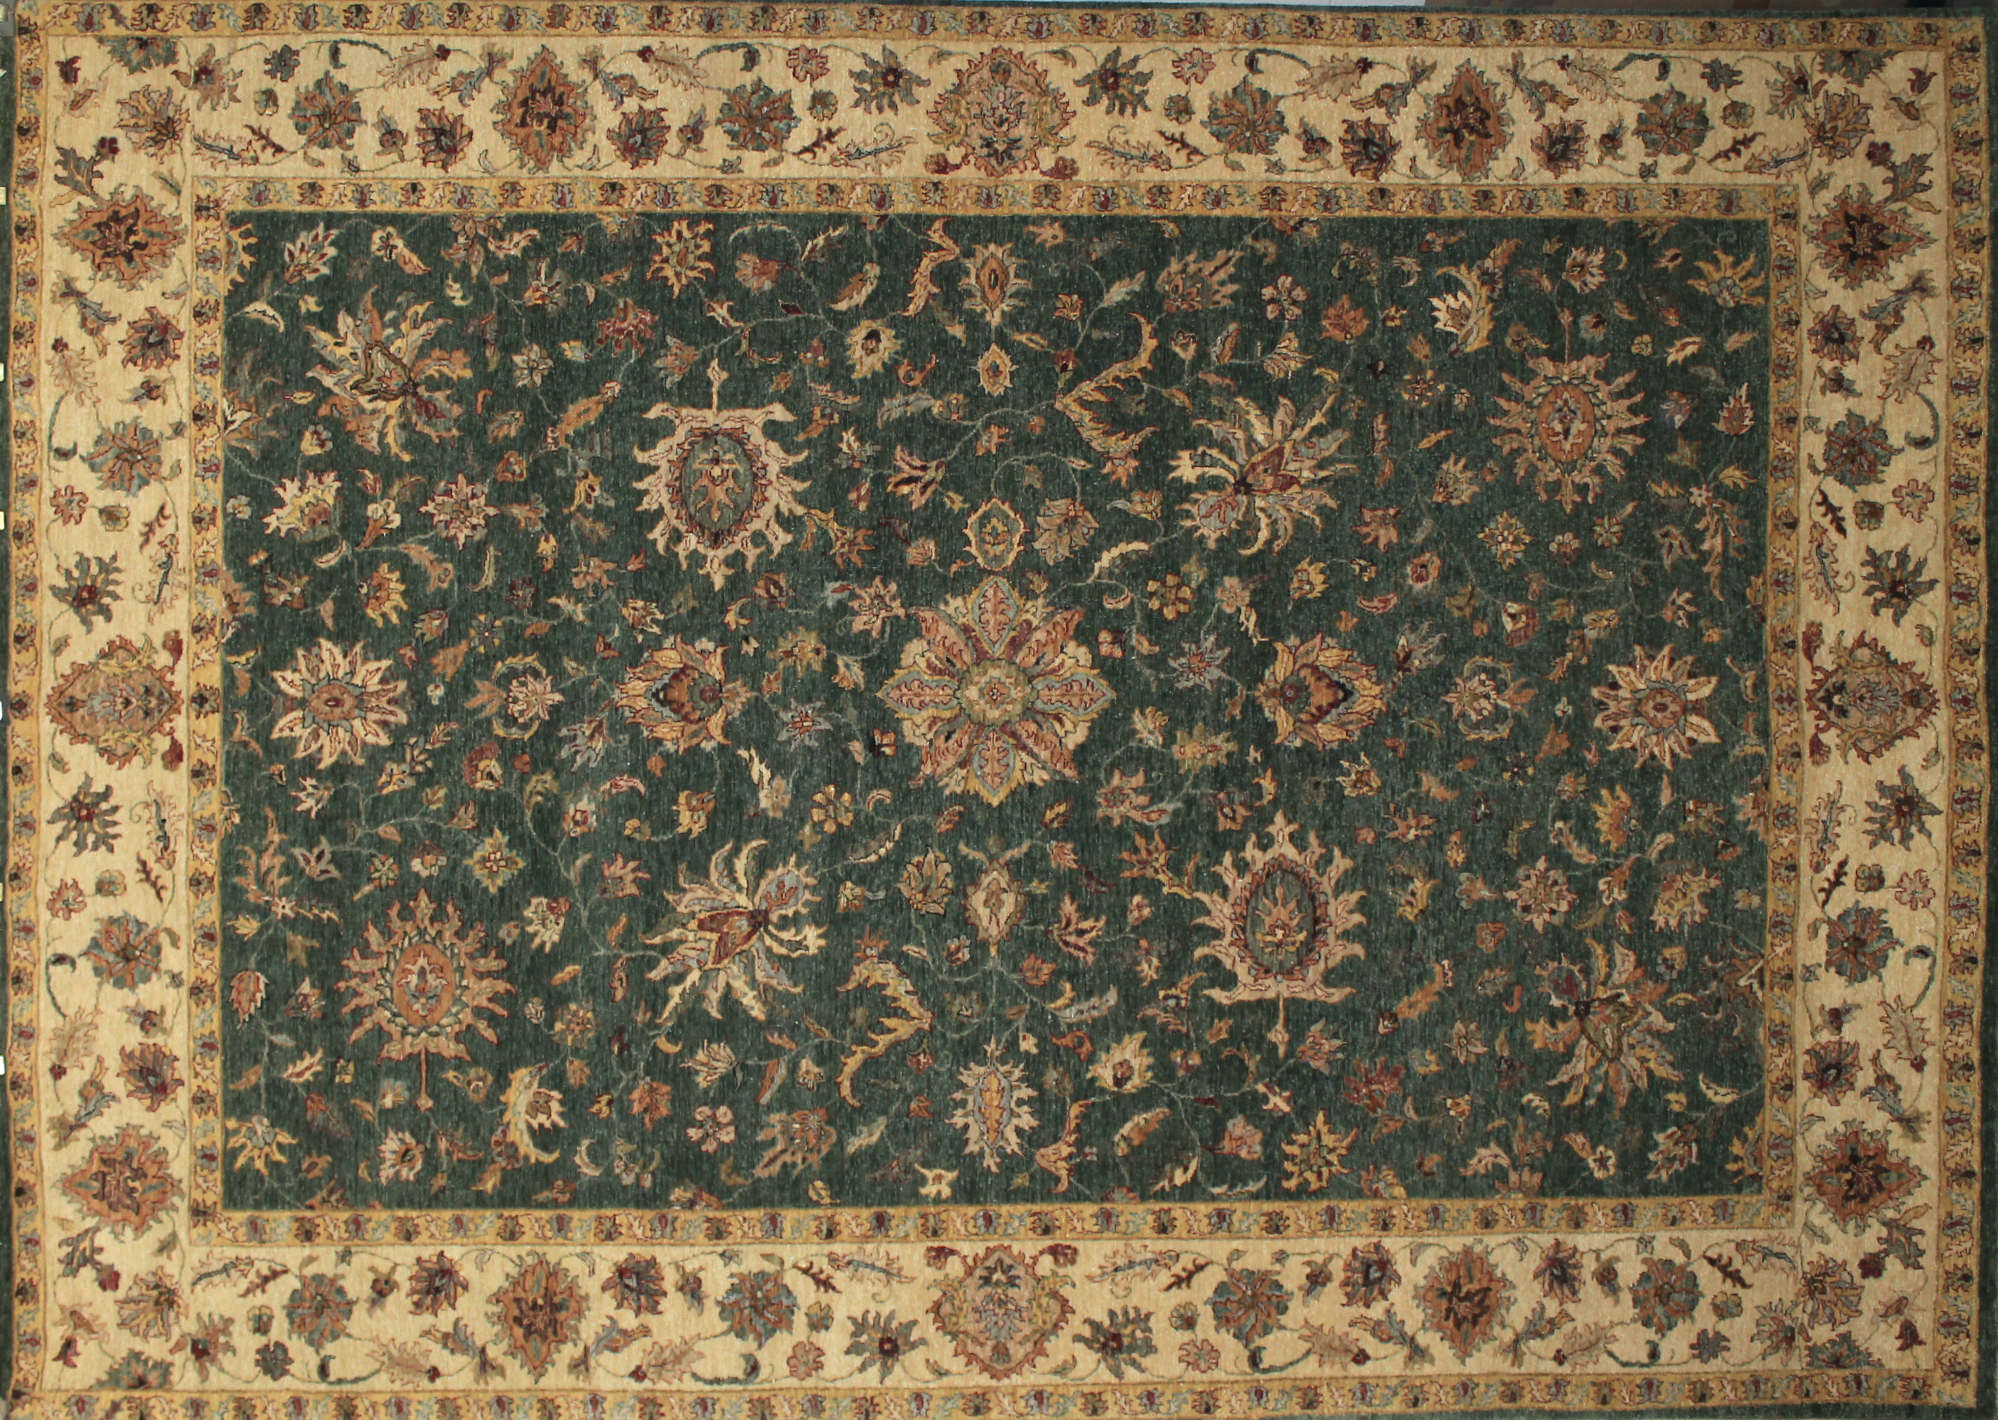 9x12 Traditional Hand Knotted Wool Area Rug - MR4911